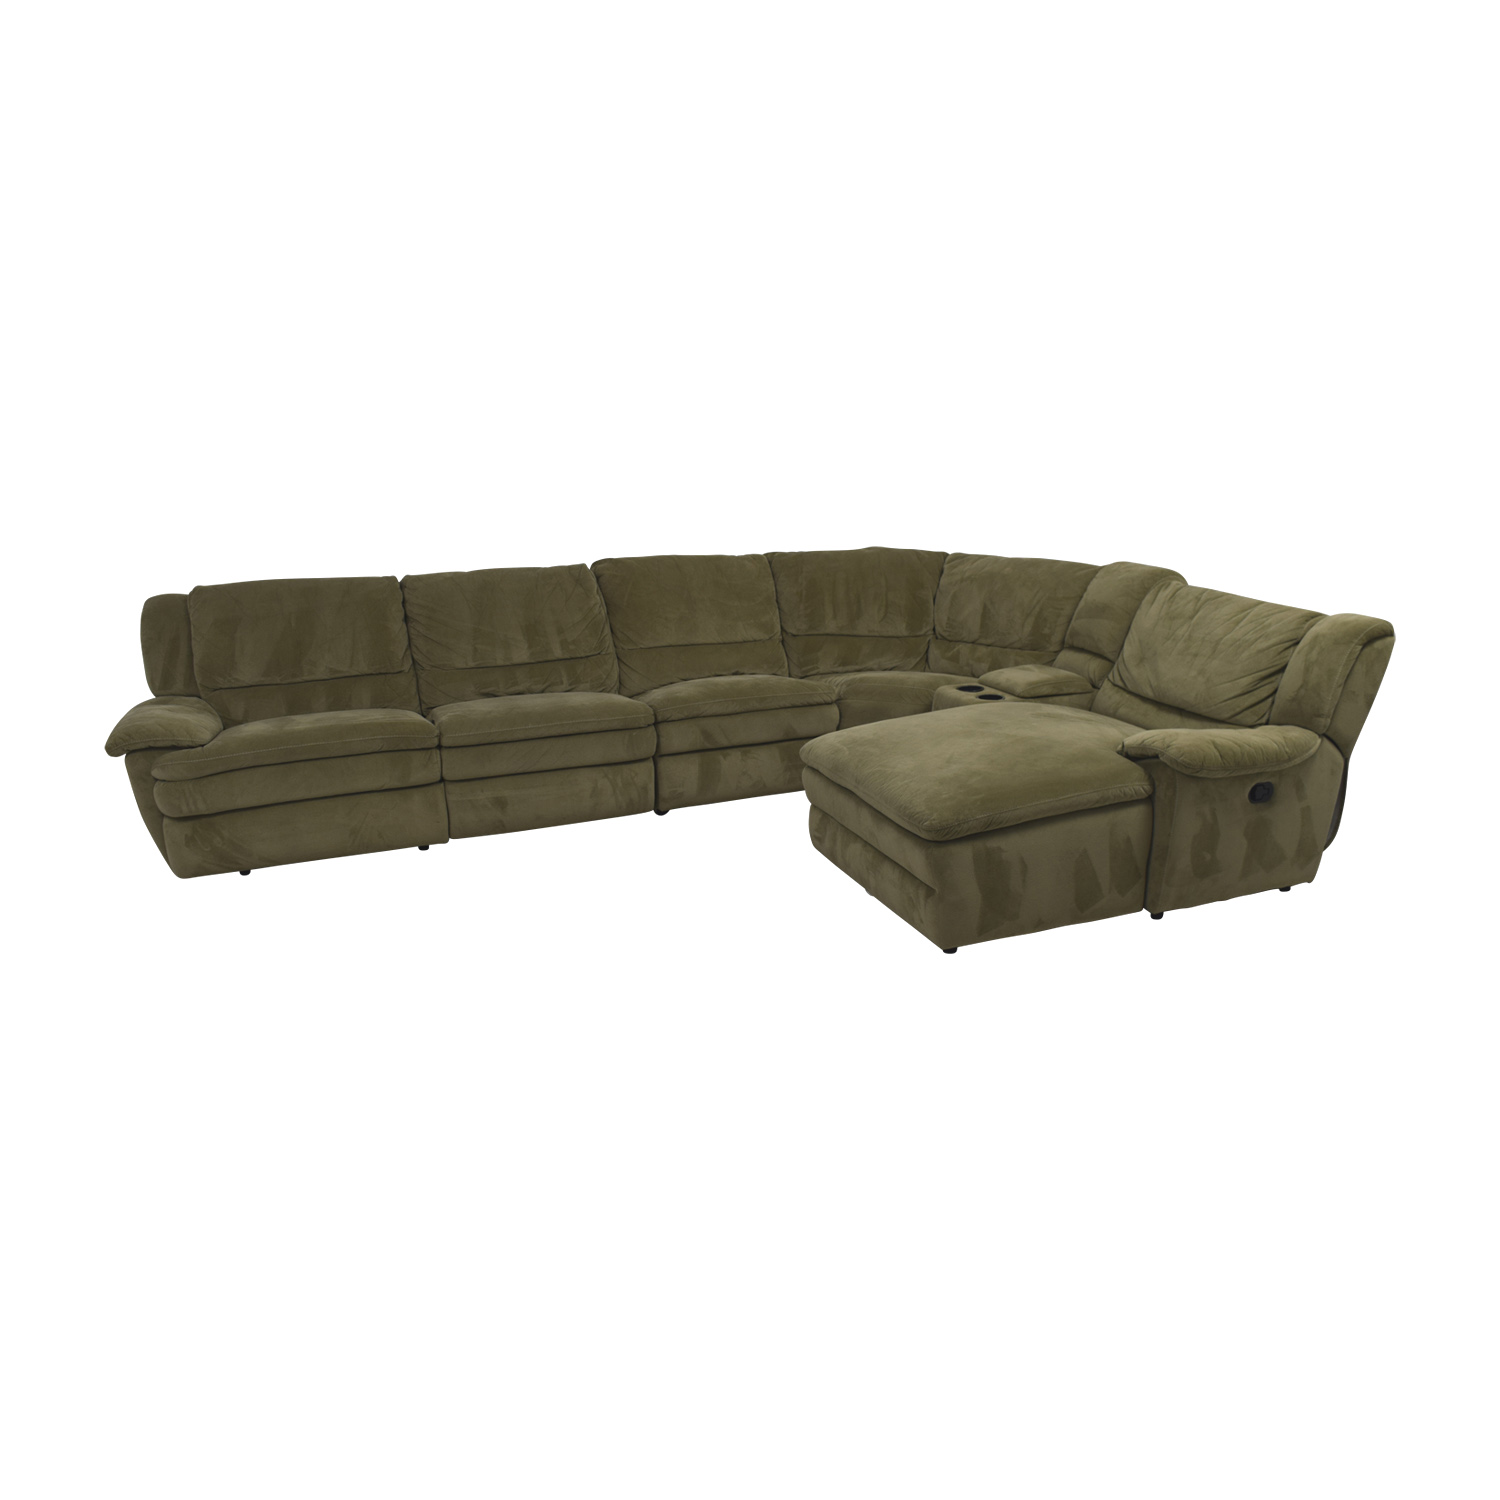 buy Bob's Furniture Grey L-Shaped Reclining Sectional Bob's Furniture